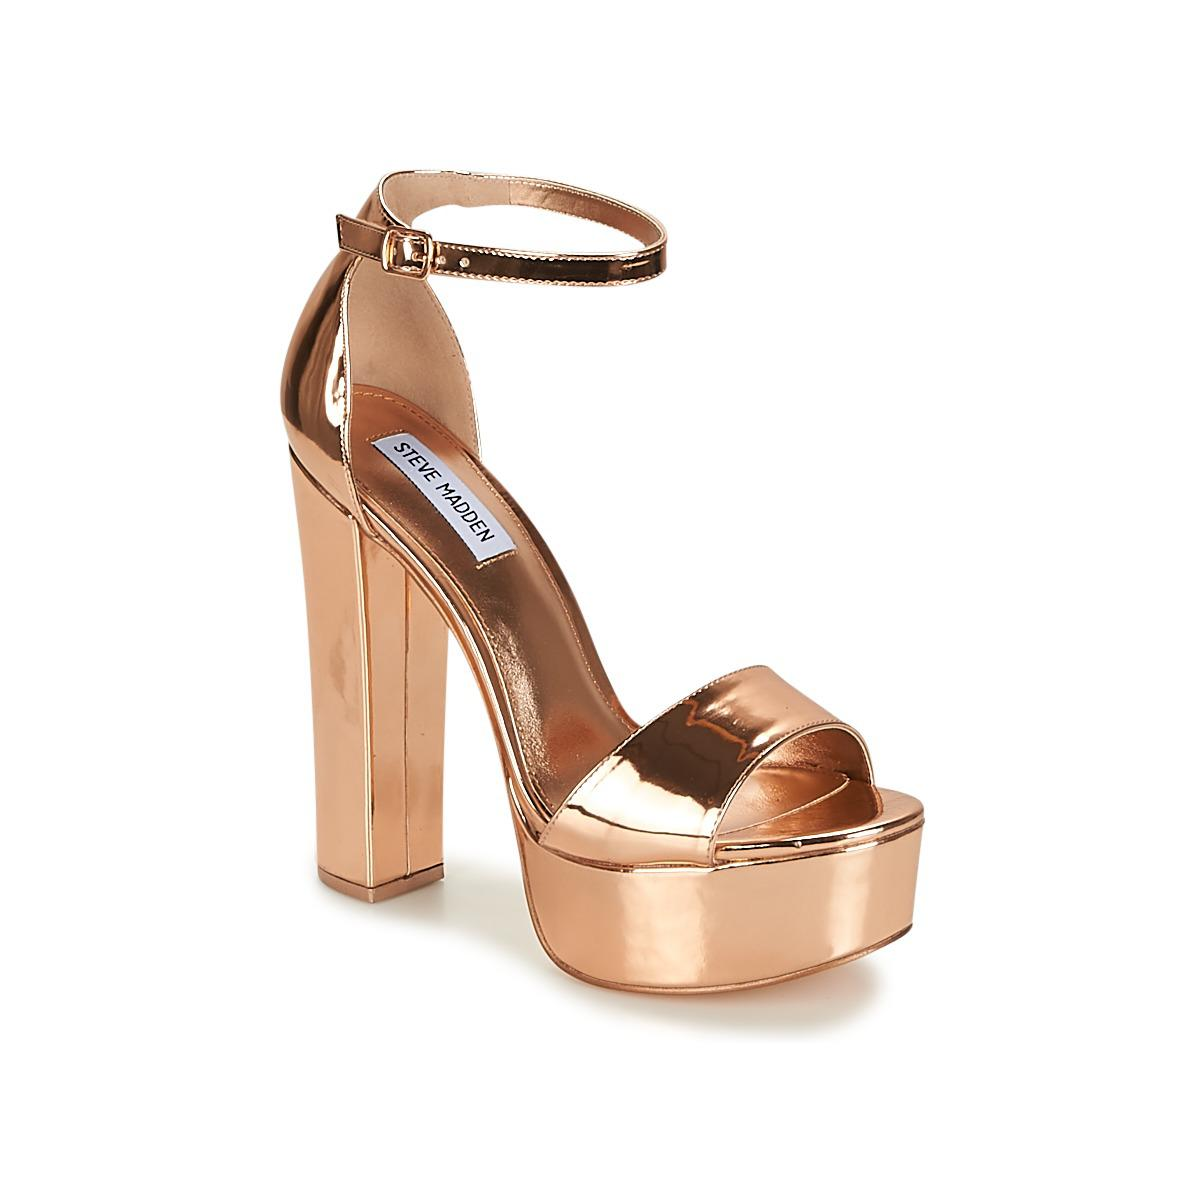 ae62d35e97e6 Steve Madden Gonzo Women s Sandals In Pink in Pink - Lyst